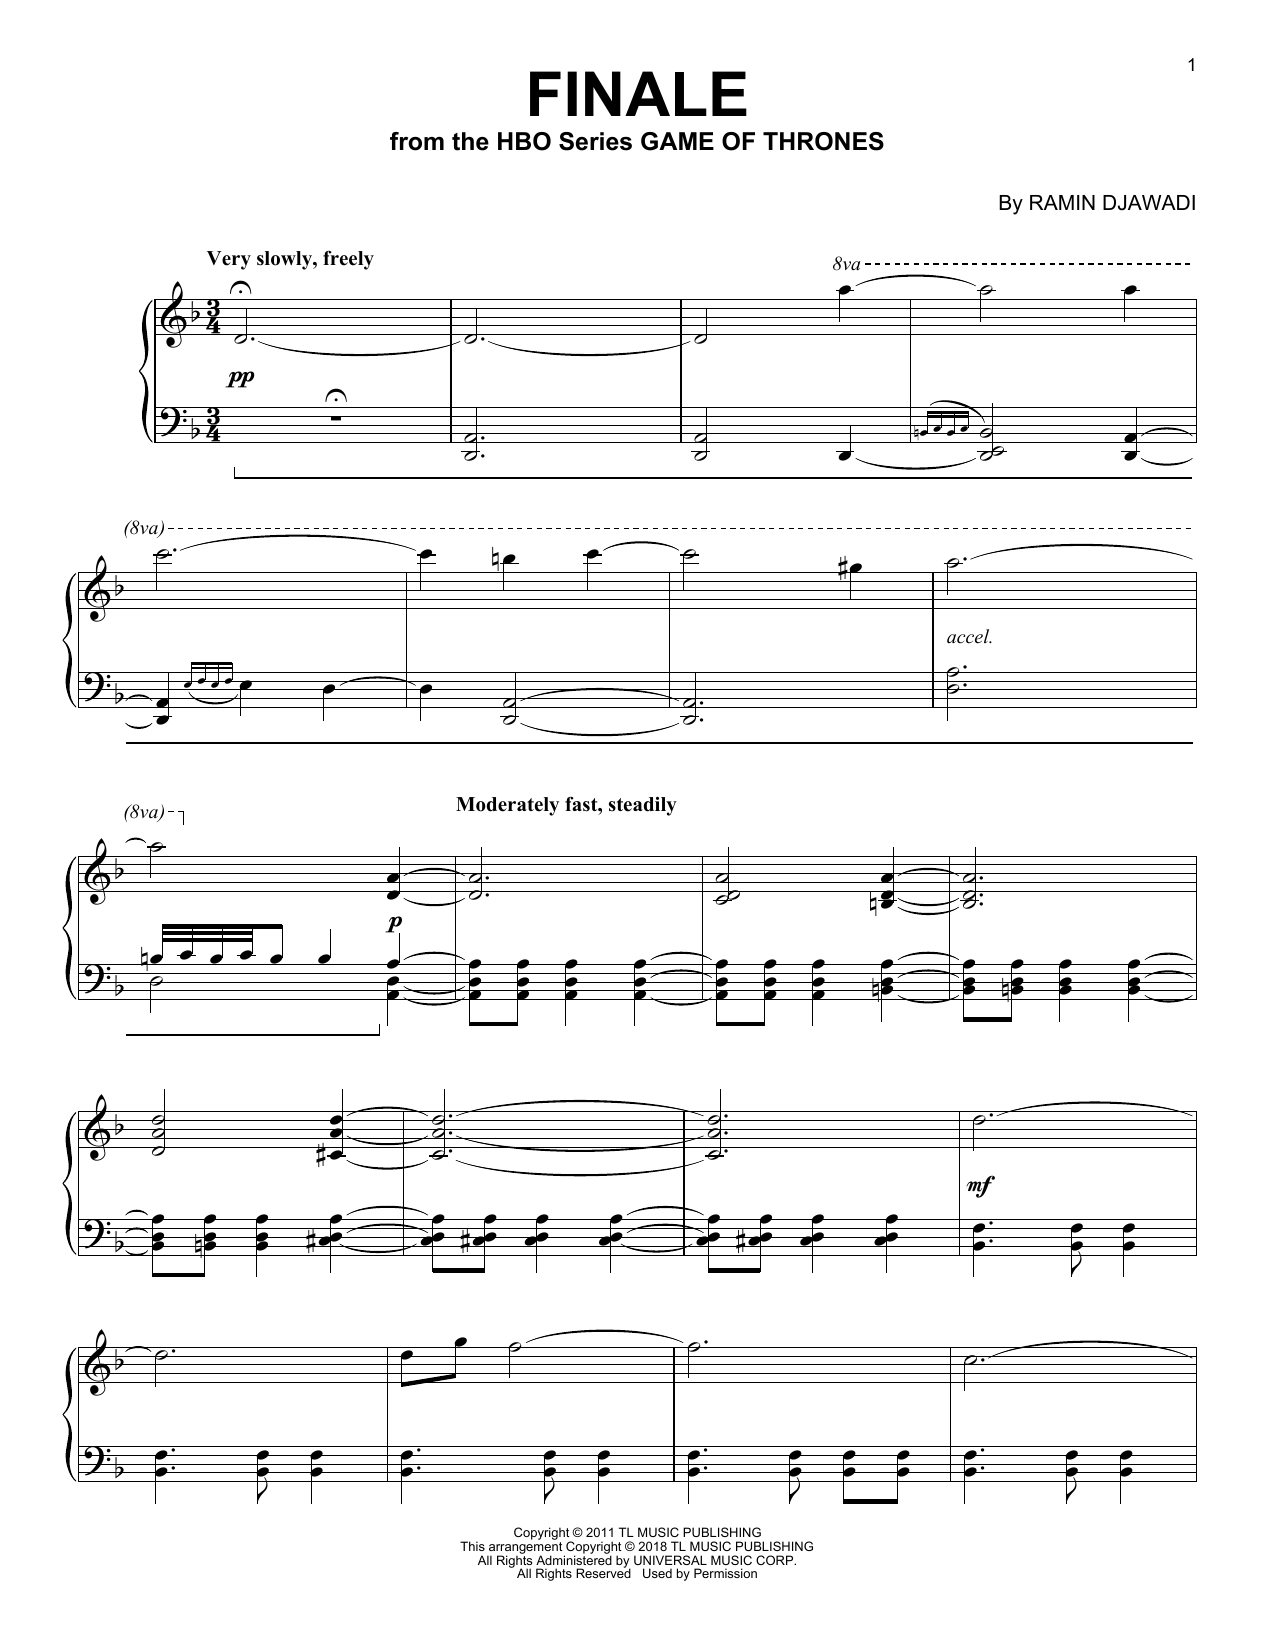 Ramin Djawadi Finale (from Game of Thrones) sheet music notes and chords. Download Printable PDF.